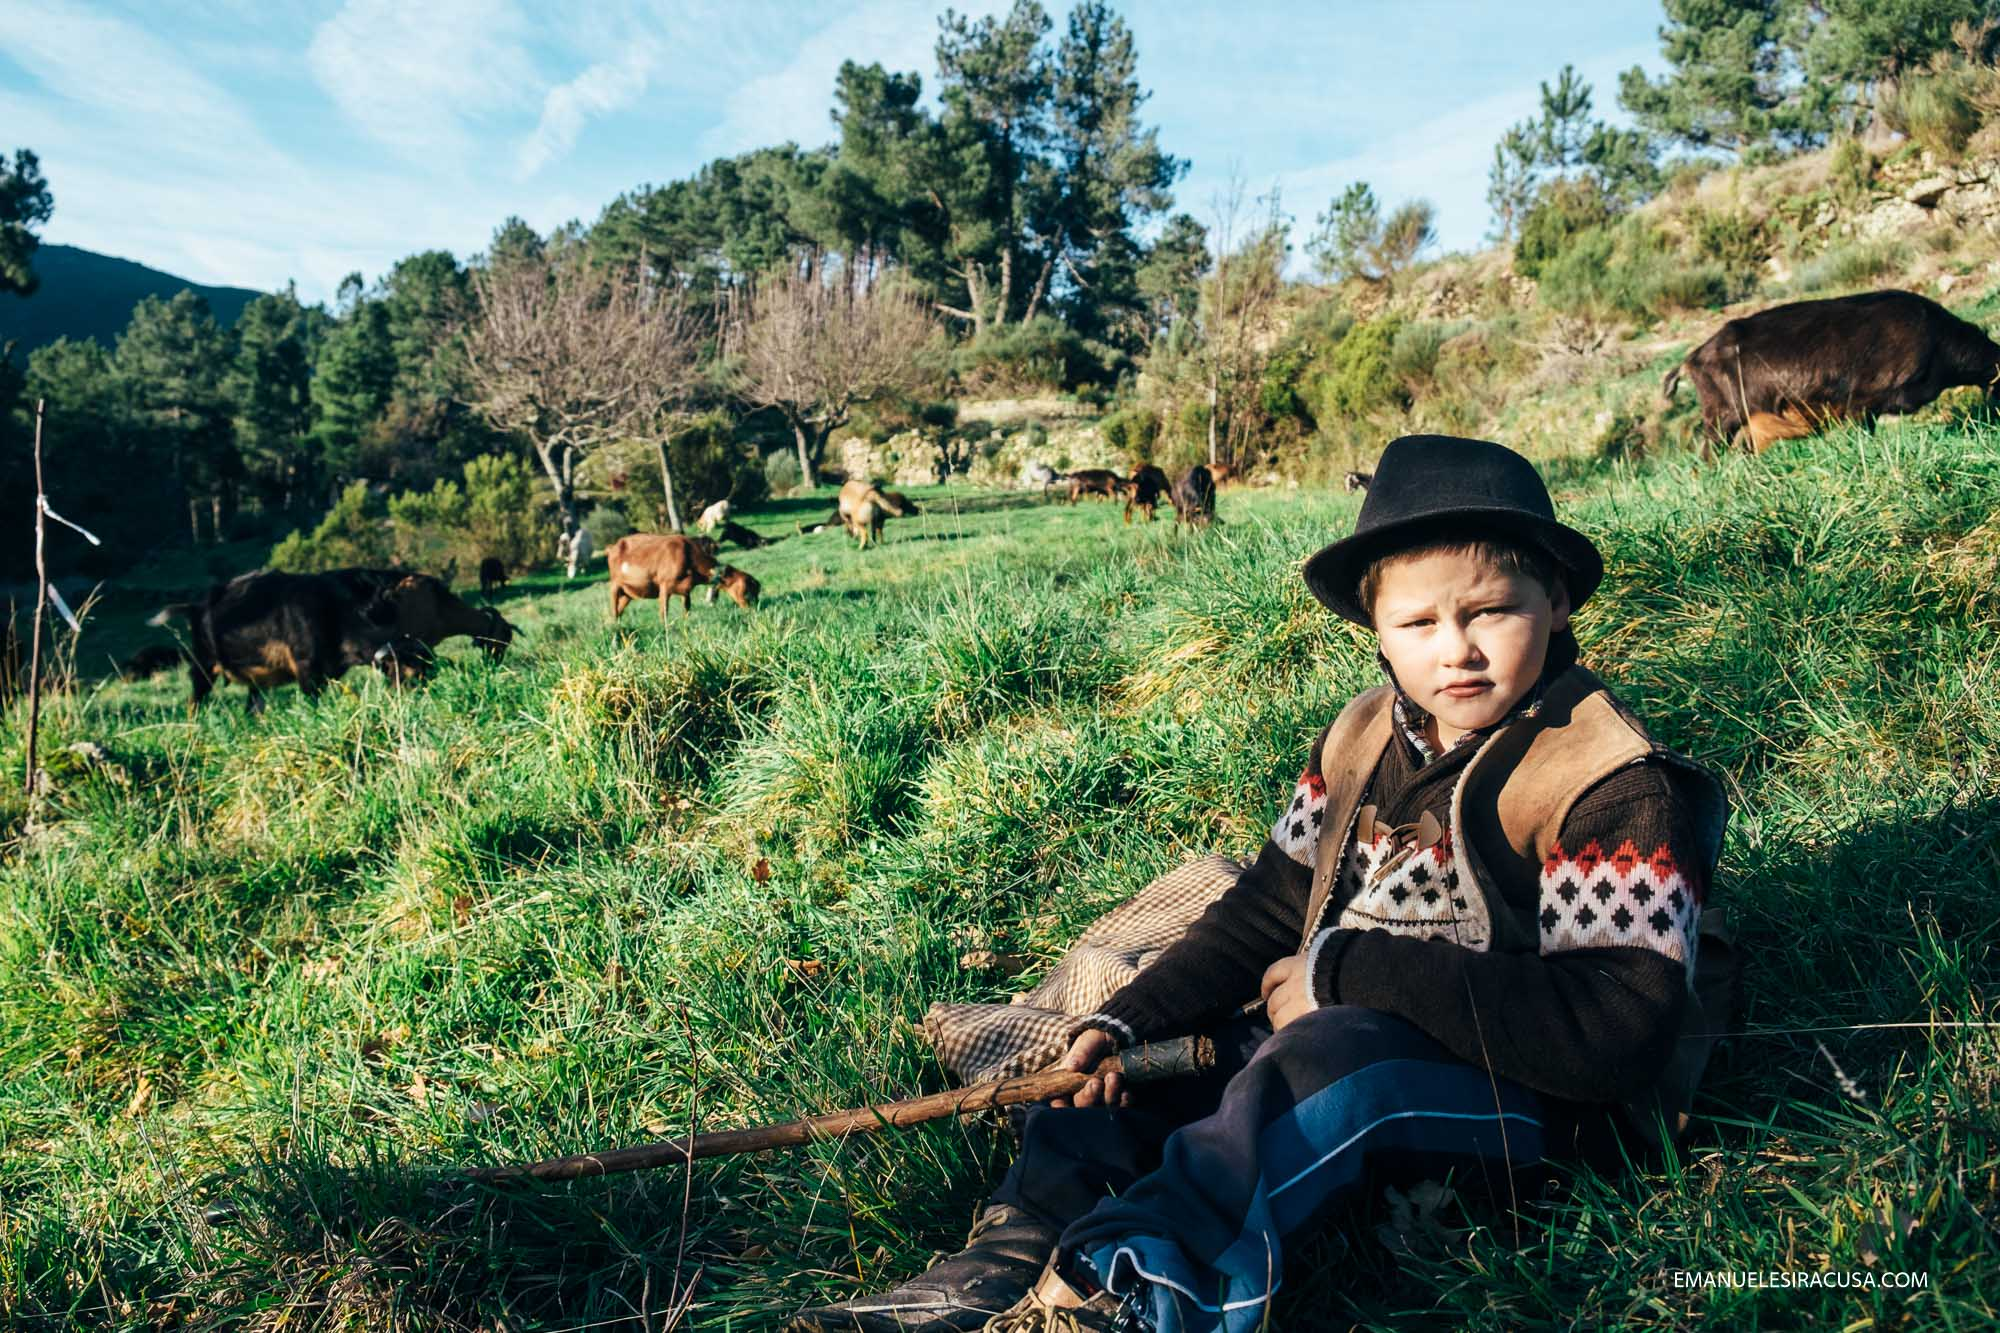 Dinis is only 9 years old but he knows he wants to be a herder. He lives with his mum, his two uncles and his beloved goats. He goes to school during the week, but at weekends he wakes up early, milk the goats and take them out with his uncle Miguel.